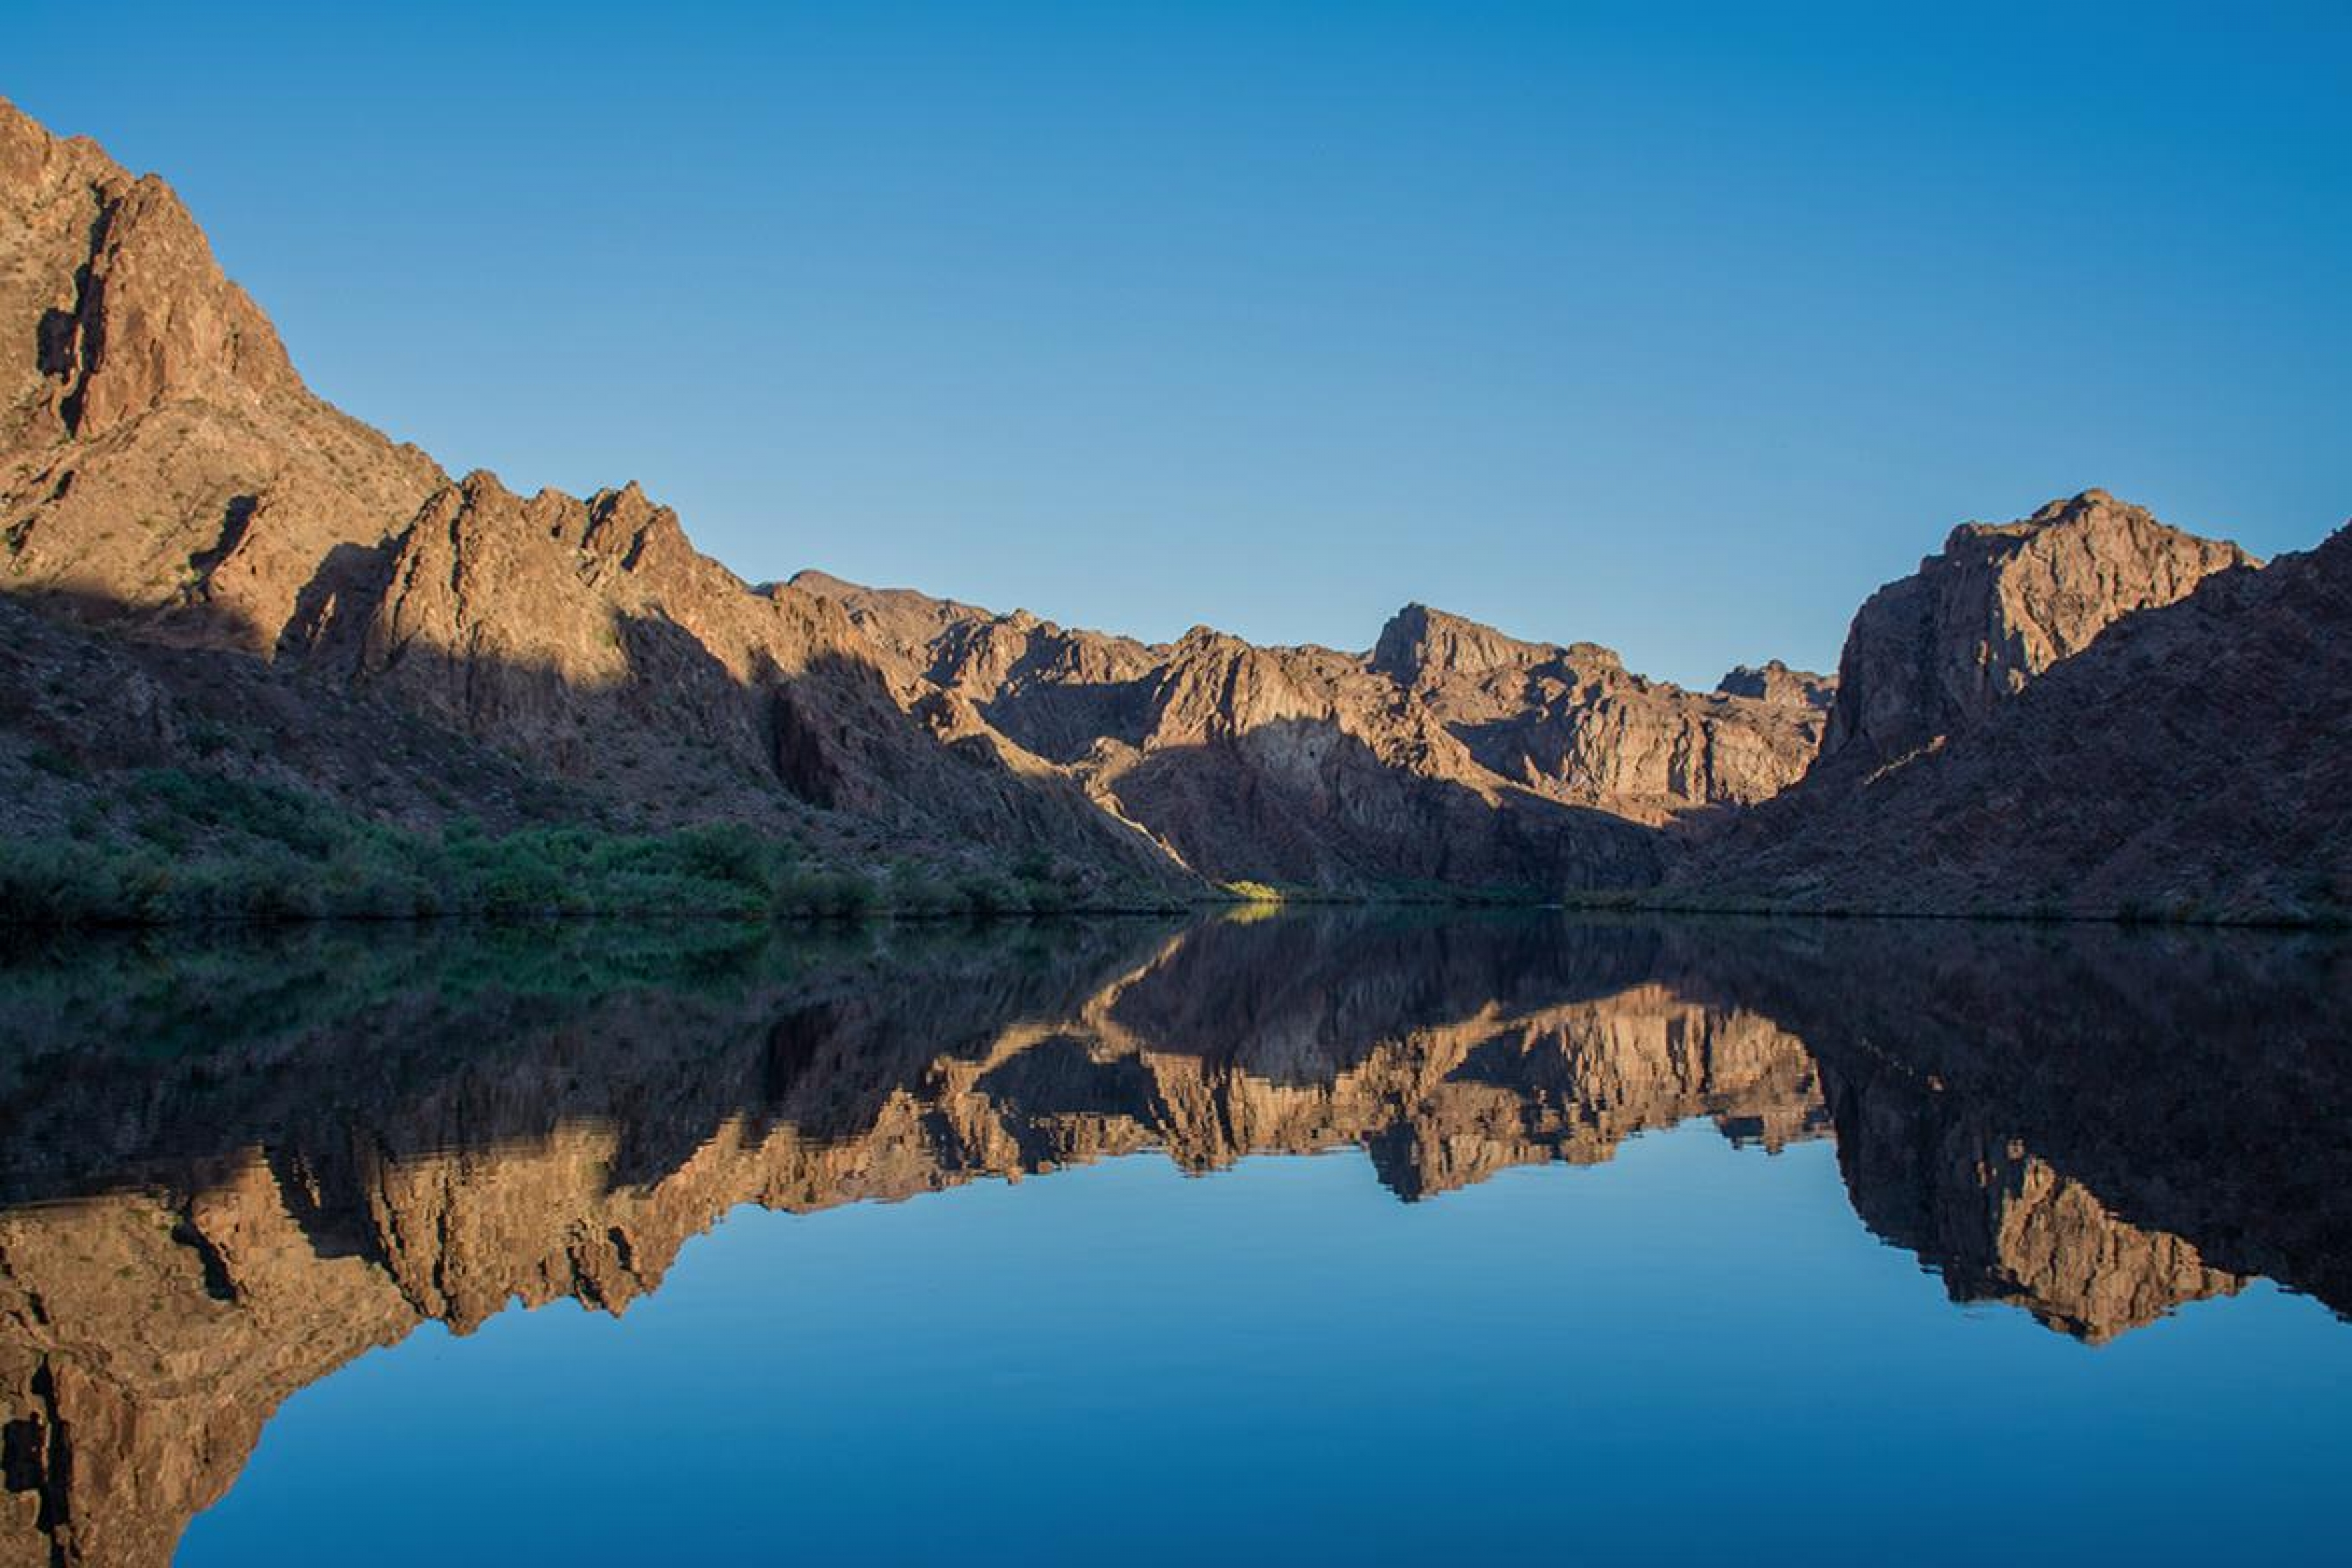 The red sandstone canyon walls reflecting in the still waters of the Black Canyon Water Trail at Lake Mead National Recreation Area